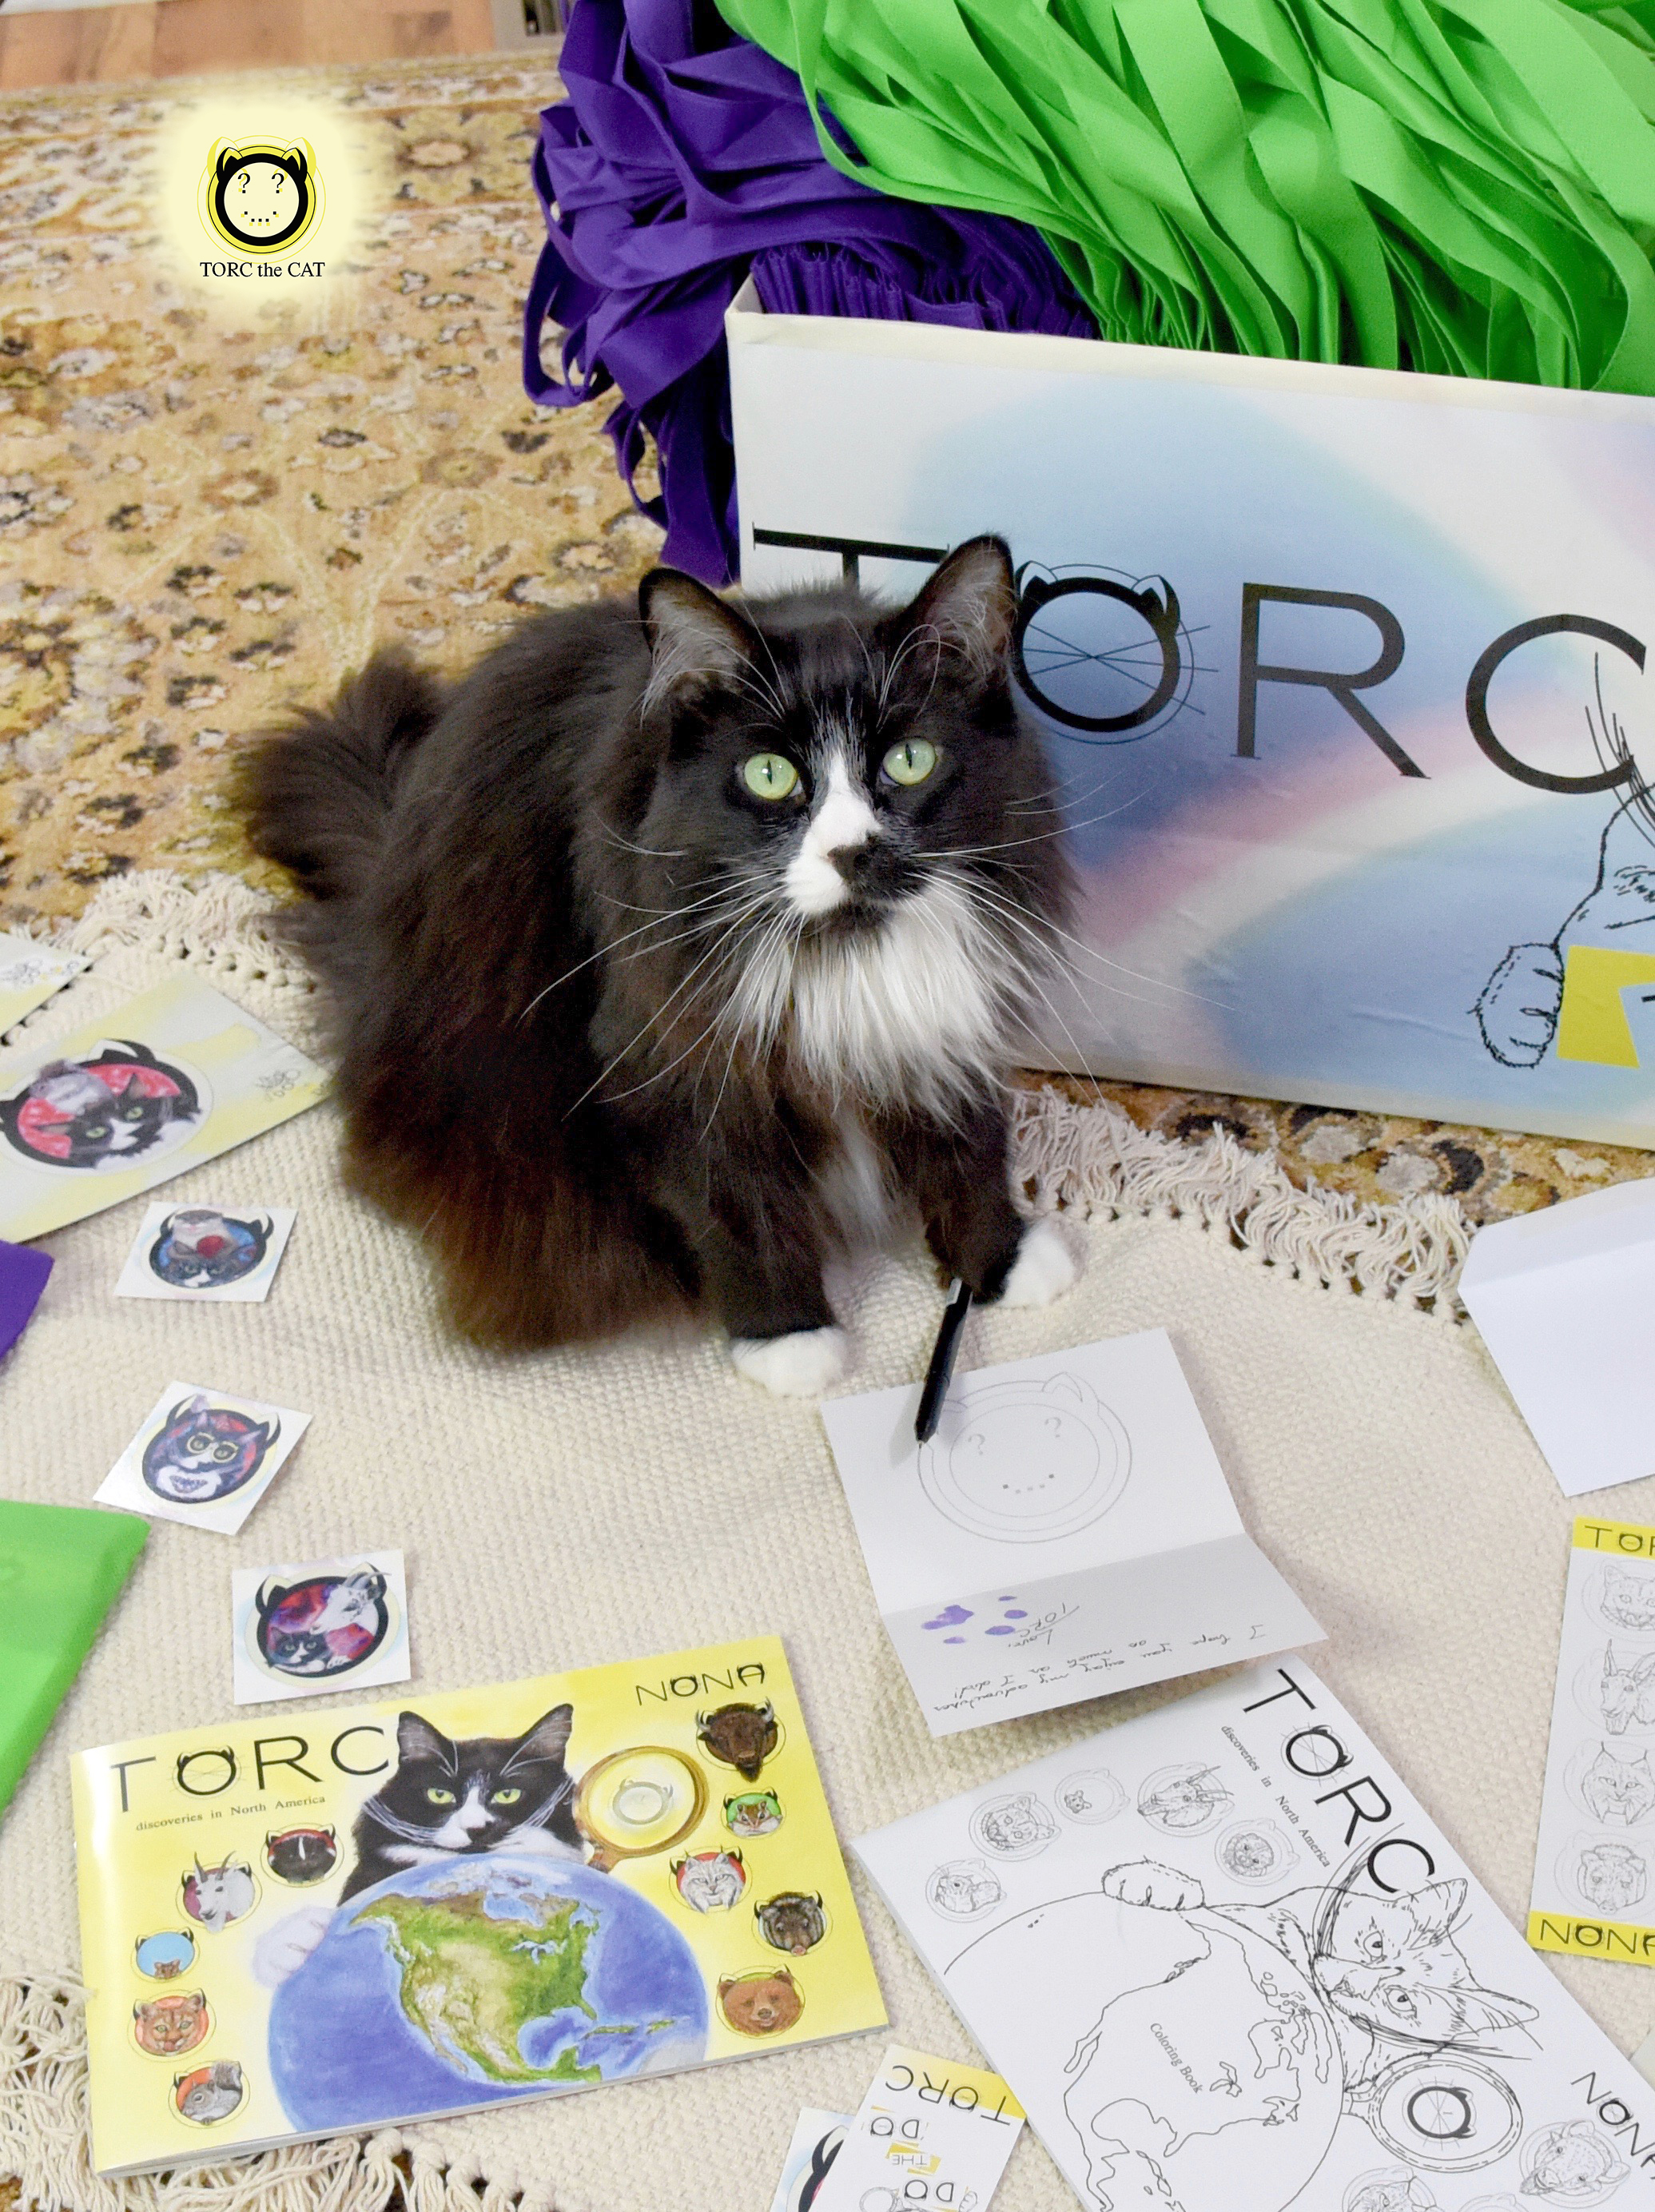 TORC the CAT caught in the process of signing one of the cards included in the gift bags donated to the Sacred Heart Children's Hospital.